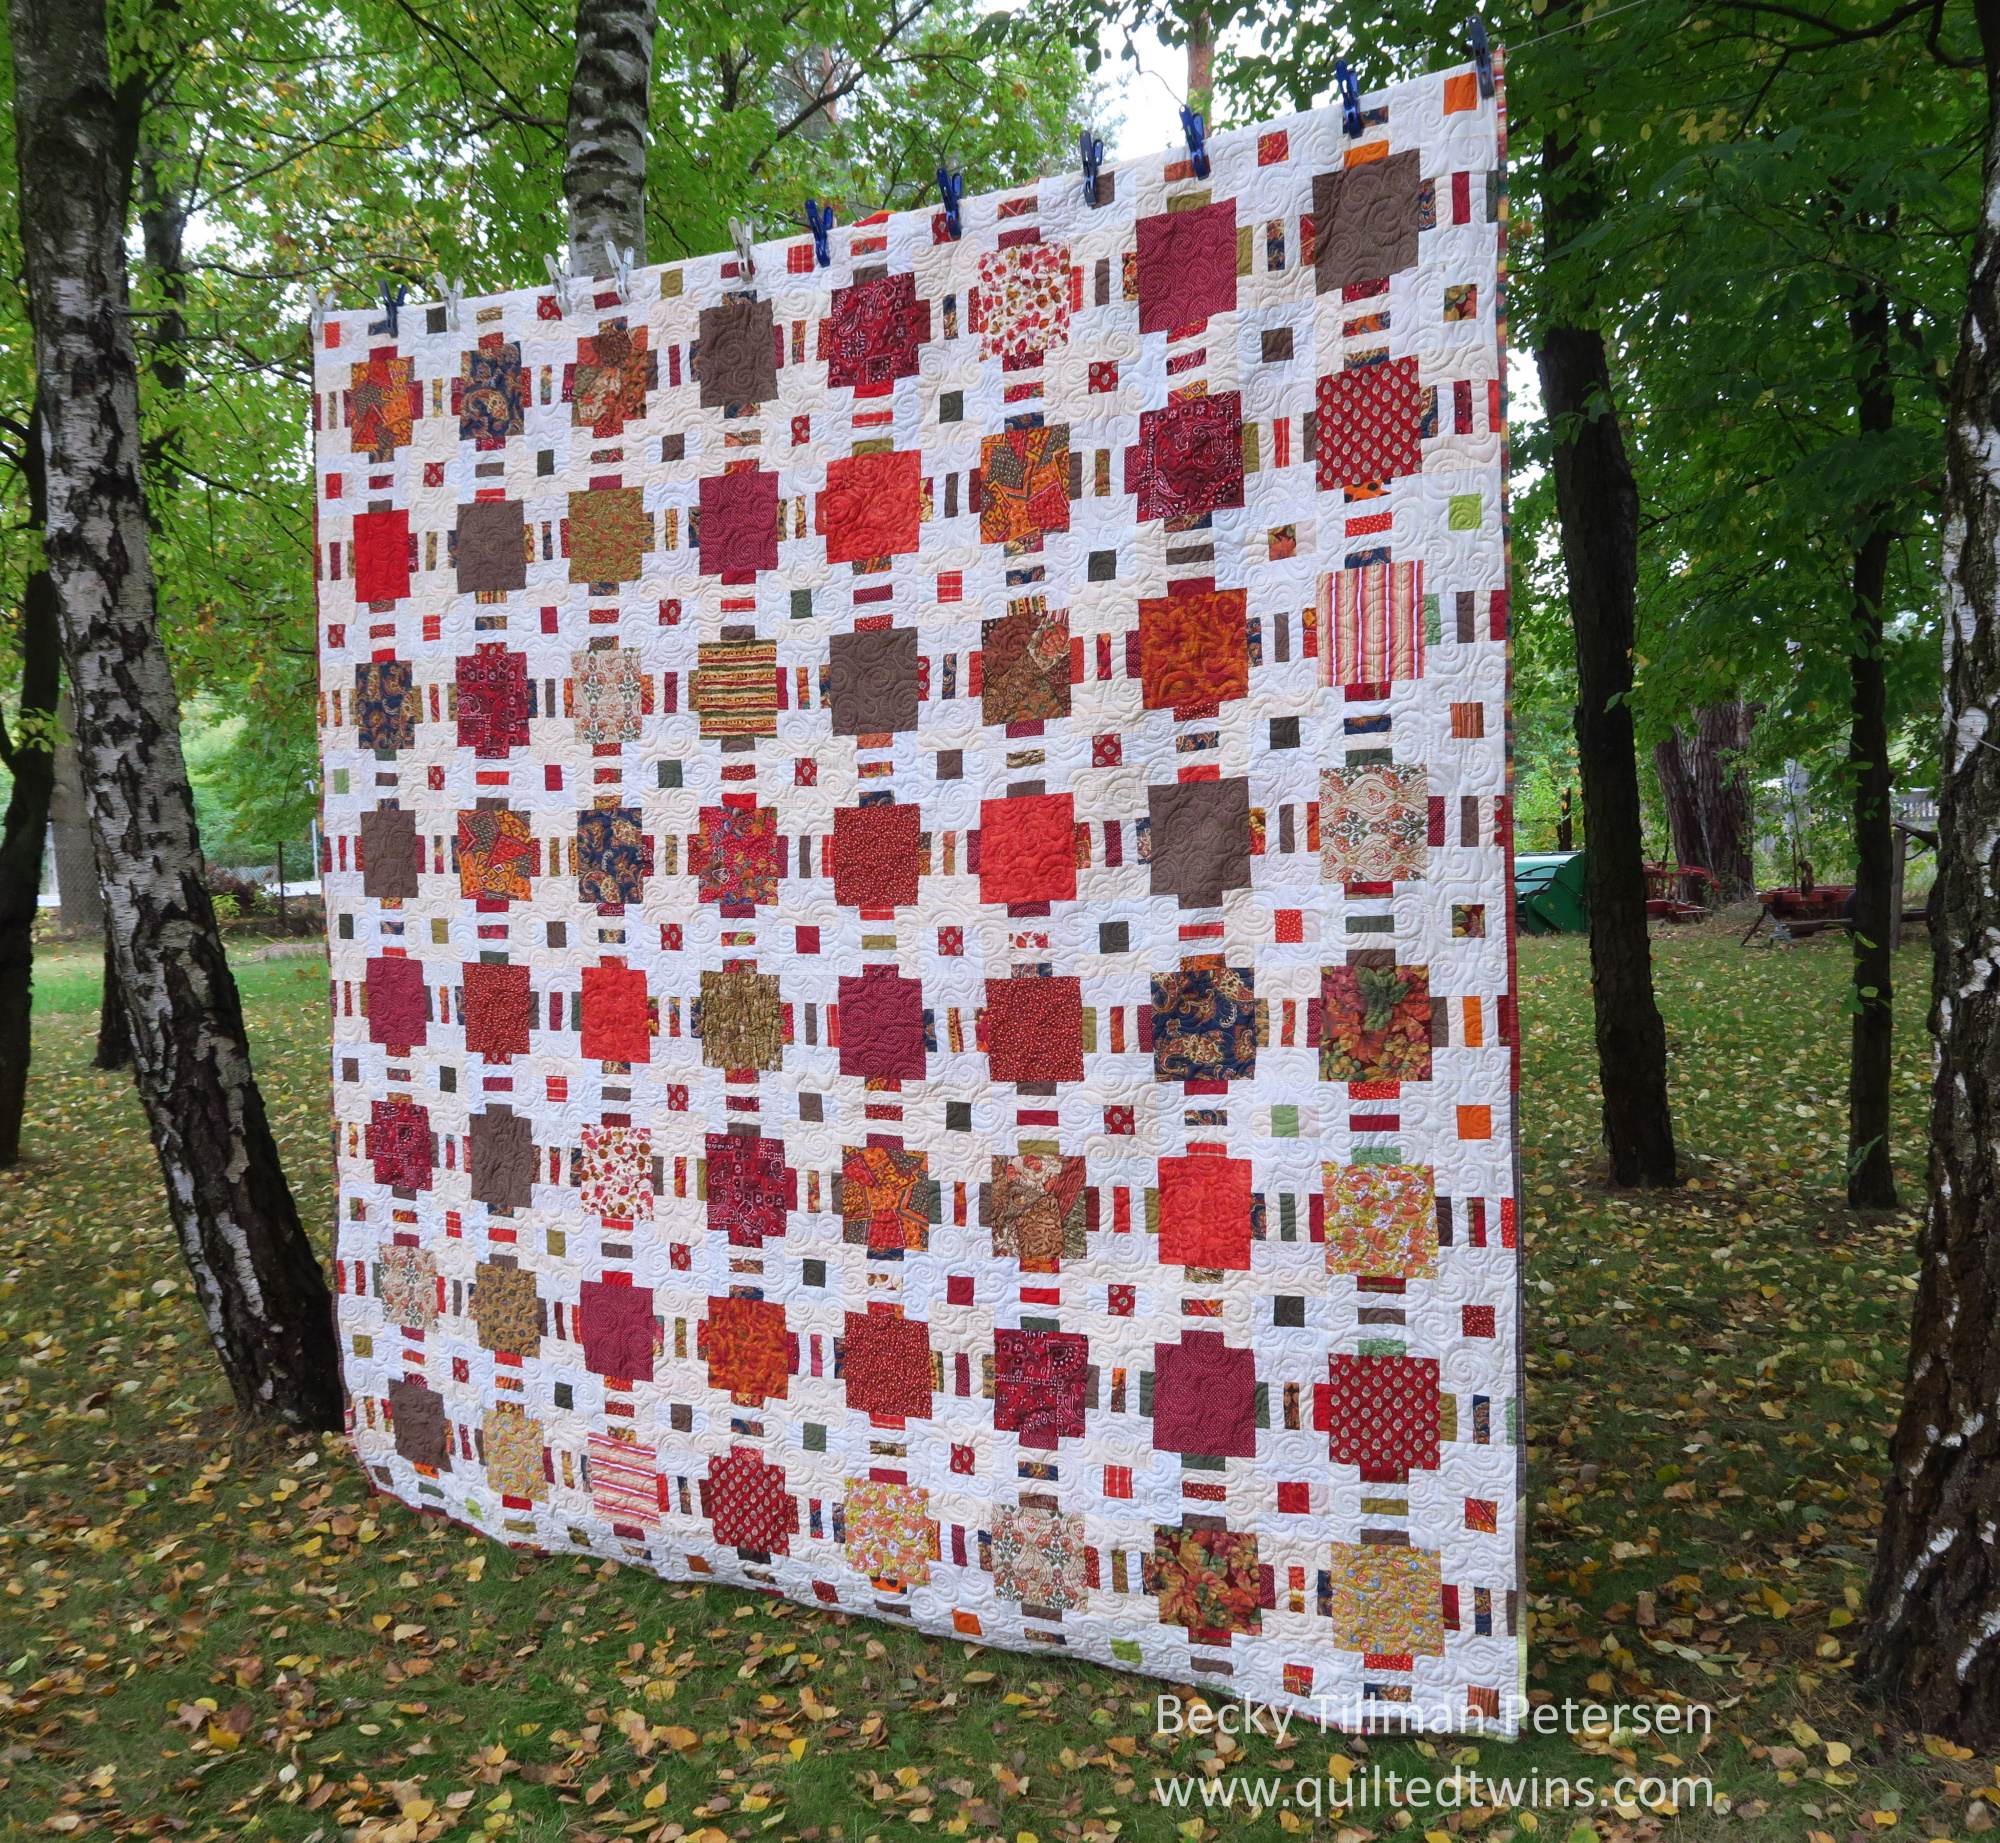 I actually wanted the picture of the quilt with the leaves on the ground. Makes it seem more like autumn!